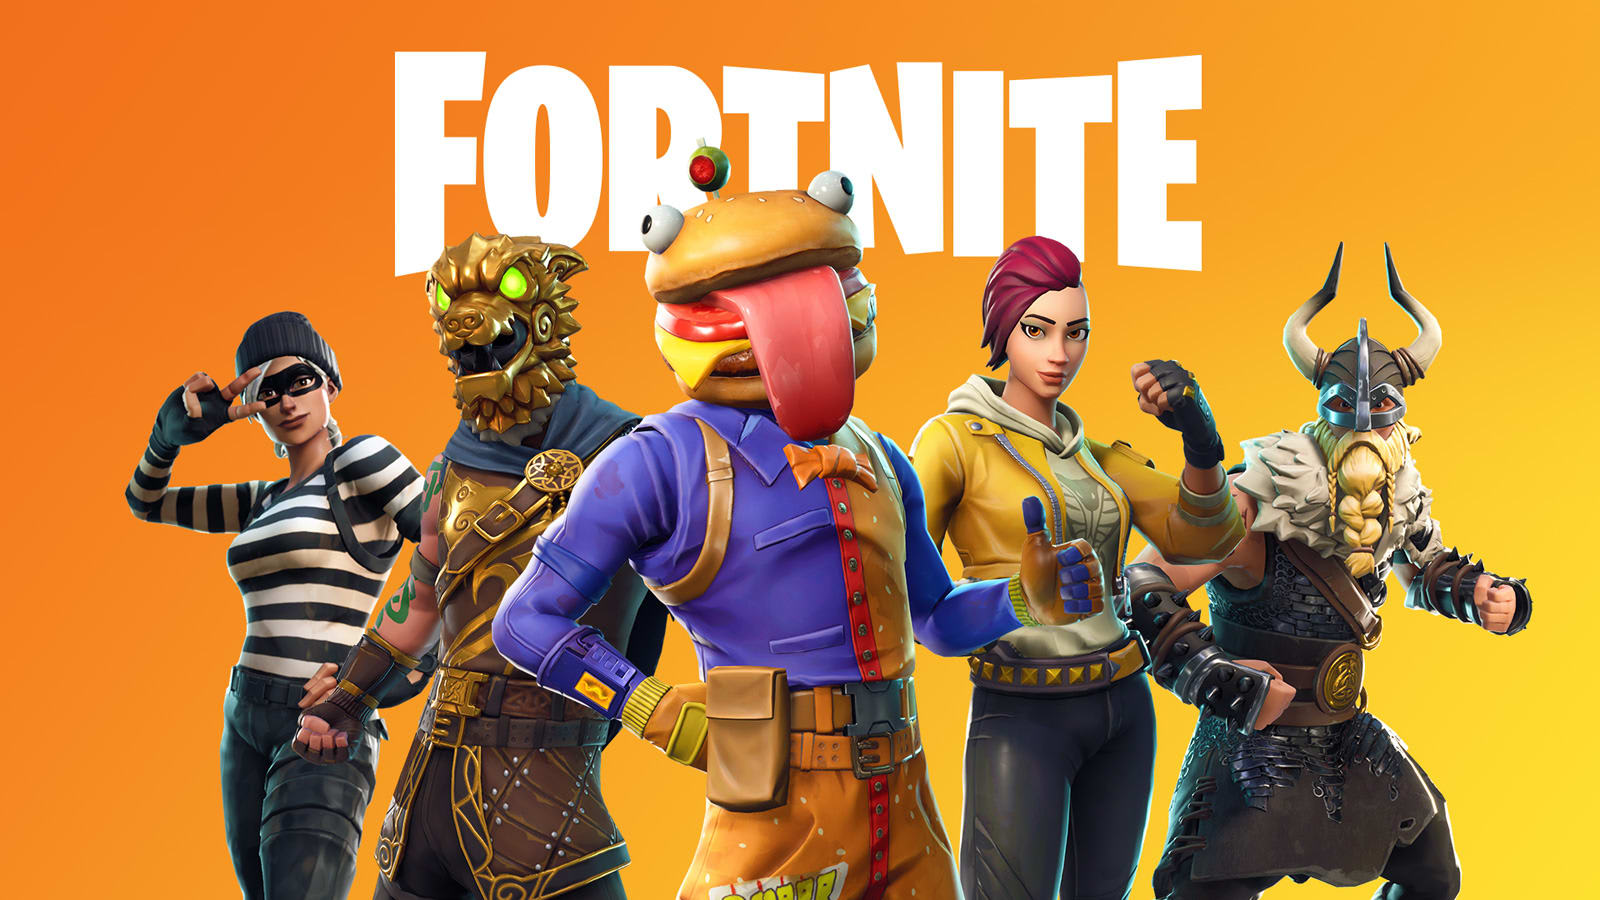 Orange Shirt Kid's mom is suing 'Fortnite' creators over dance